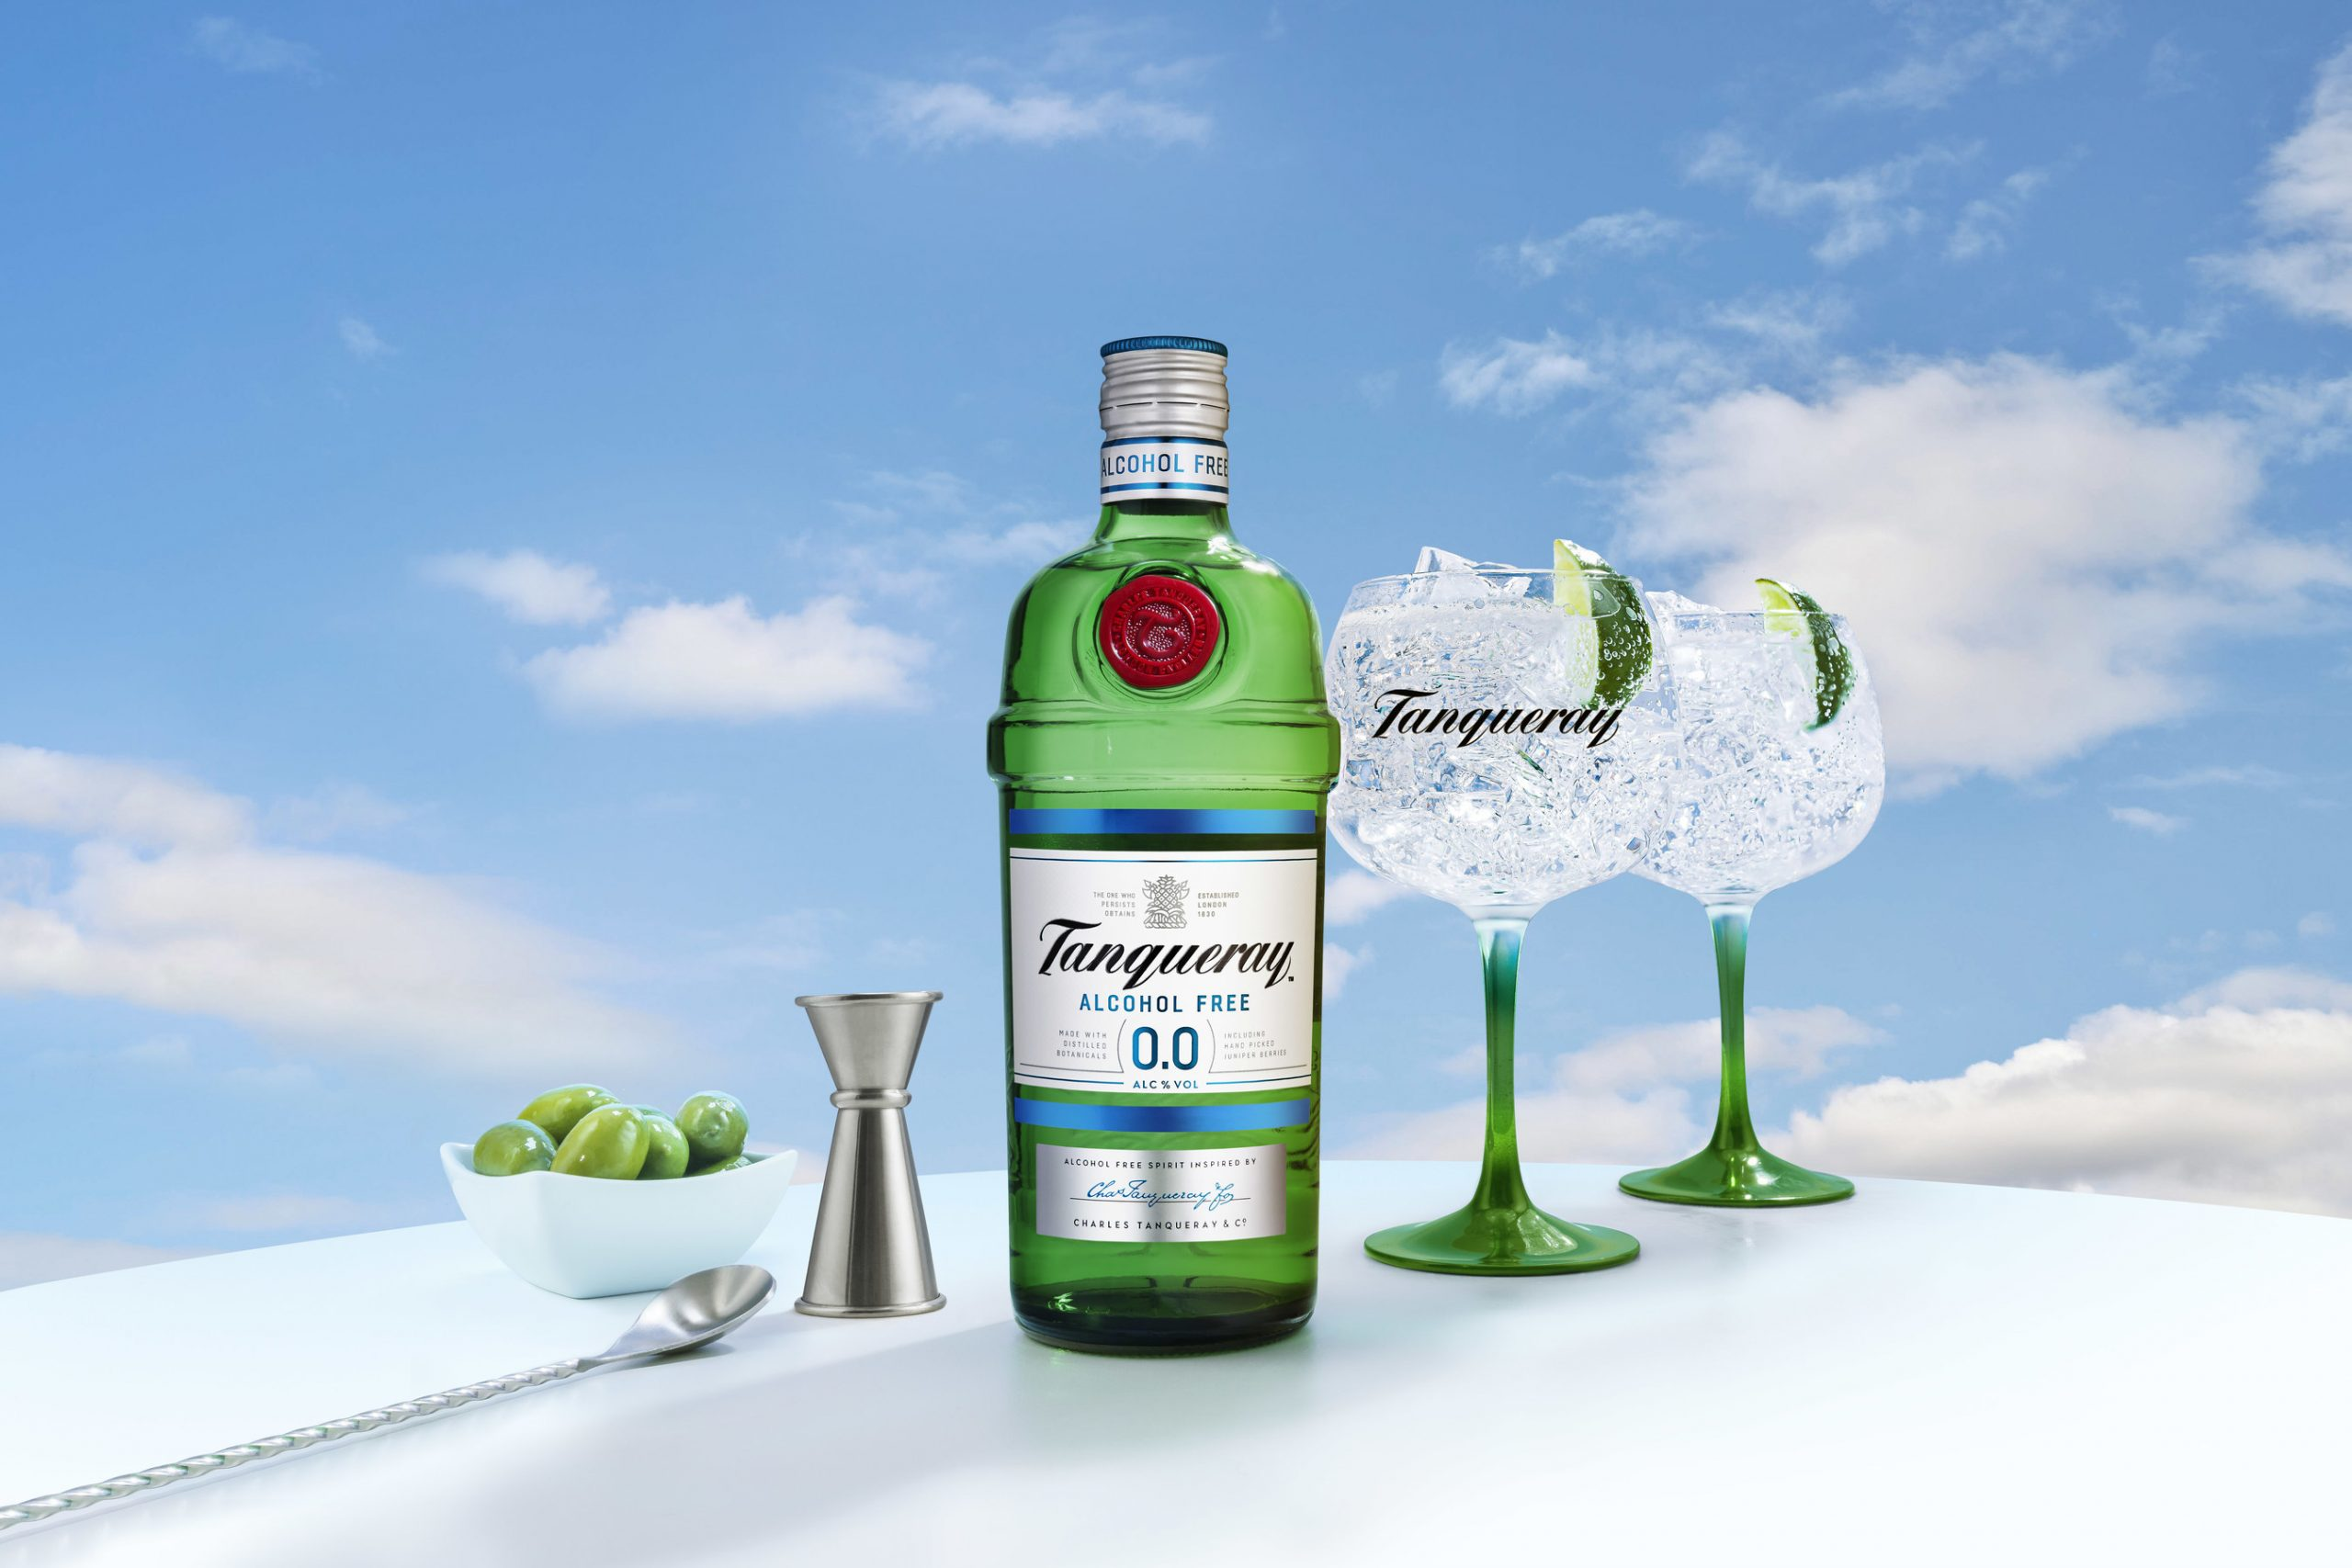 New Tanqueray 0.0%: All The Taste, Zero Alcohol photo